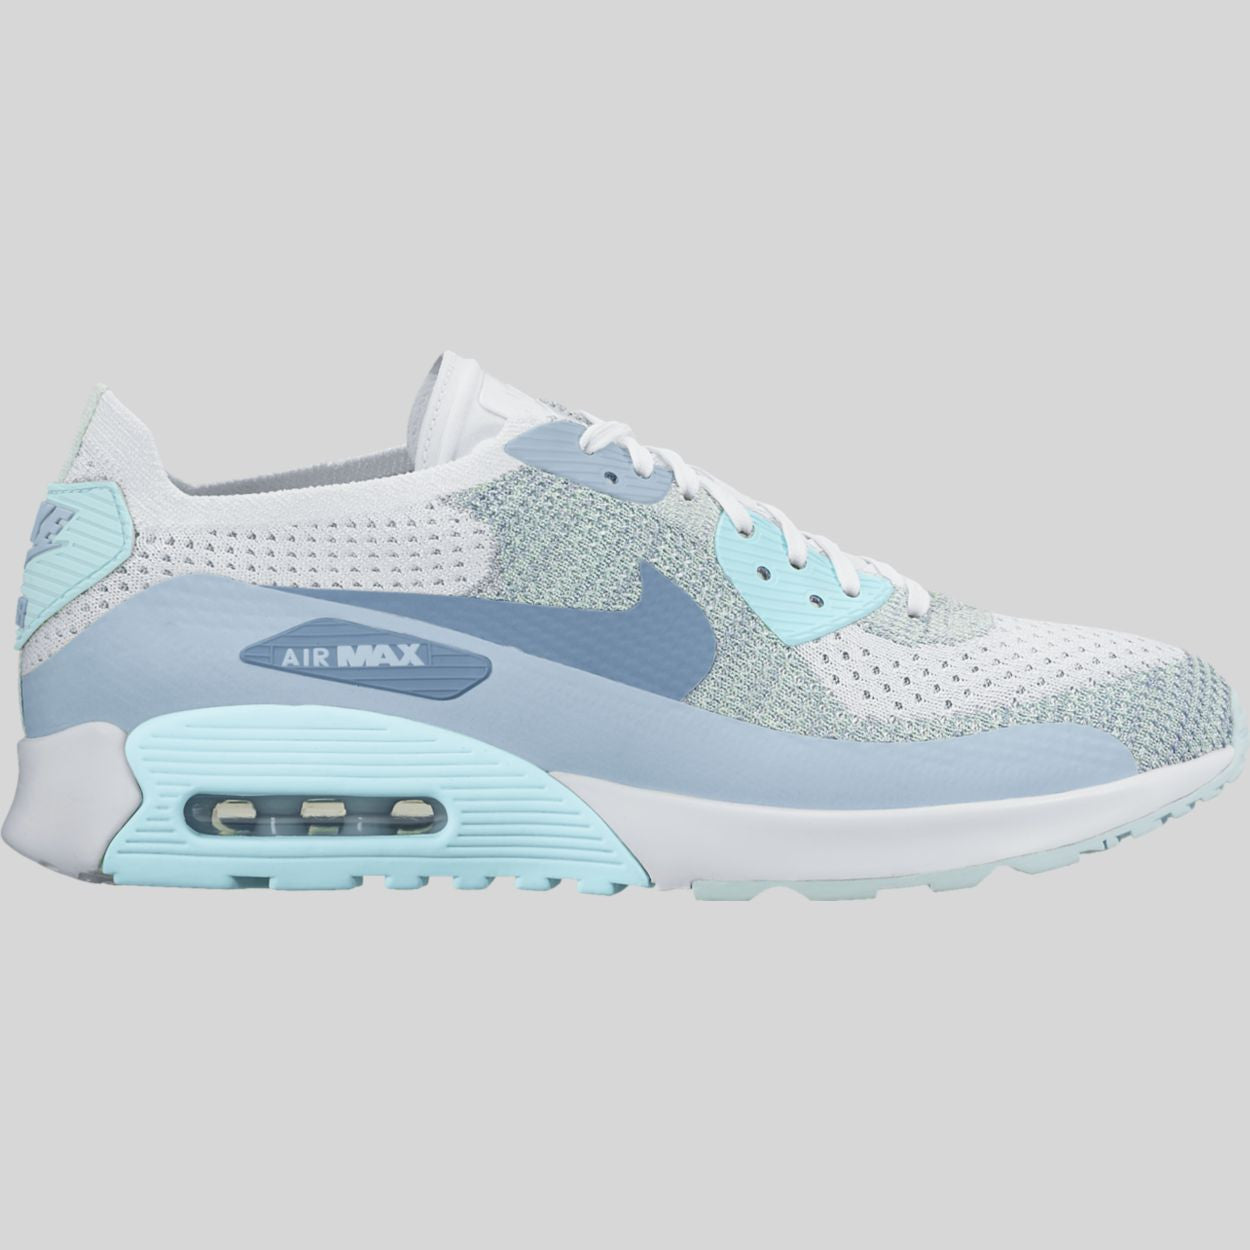 new arrival 7182d 4bcdf Nike Wmns Air Max 90 Ultra 2.0 Flyknit White Light Armory Blue